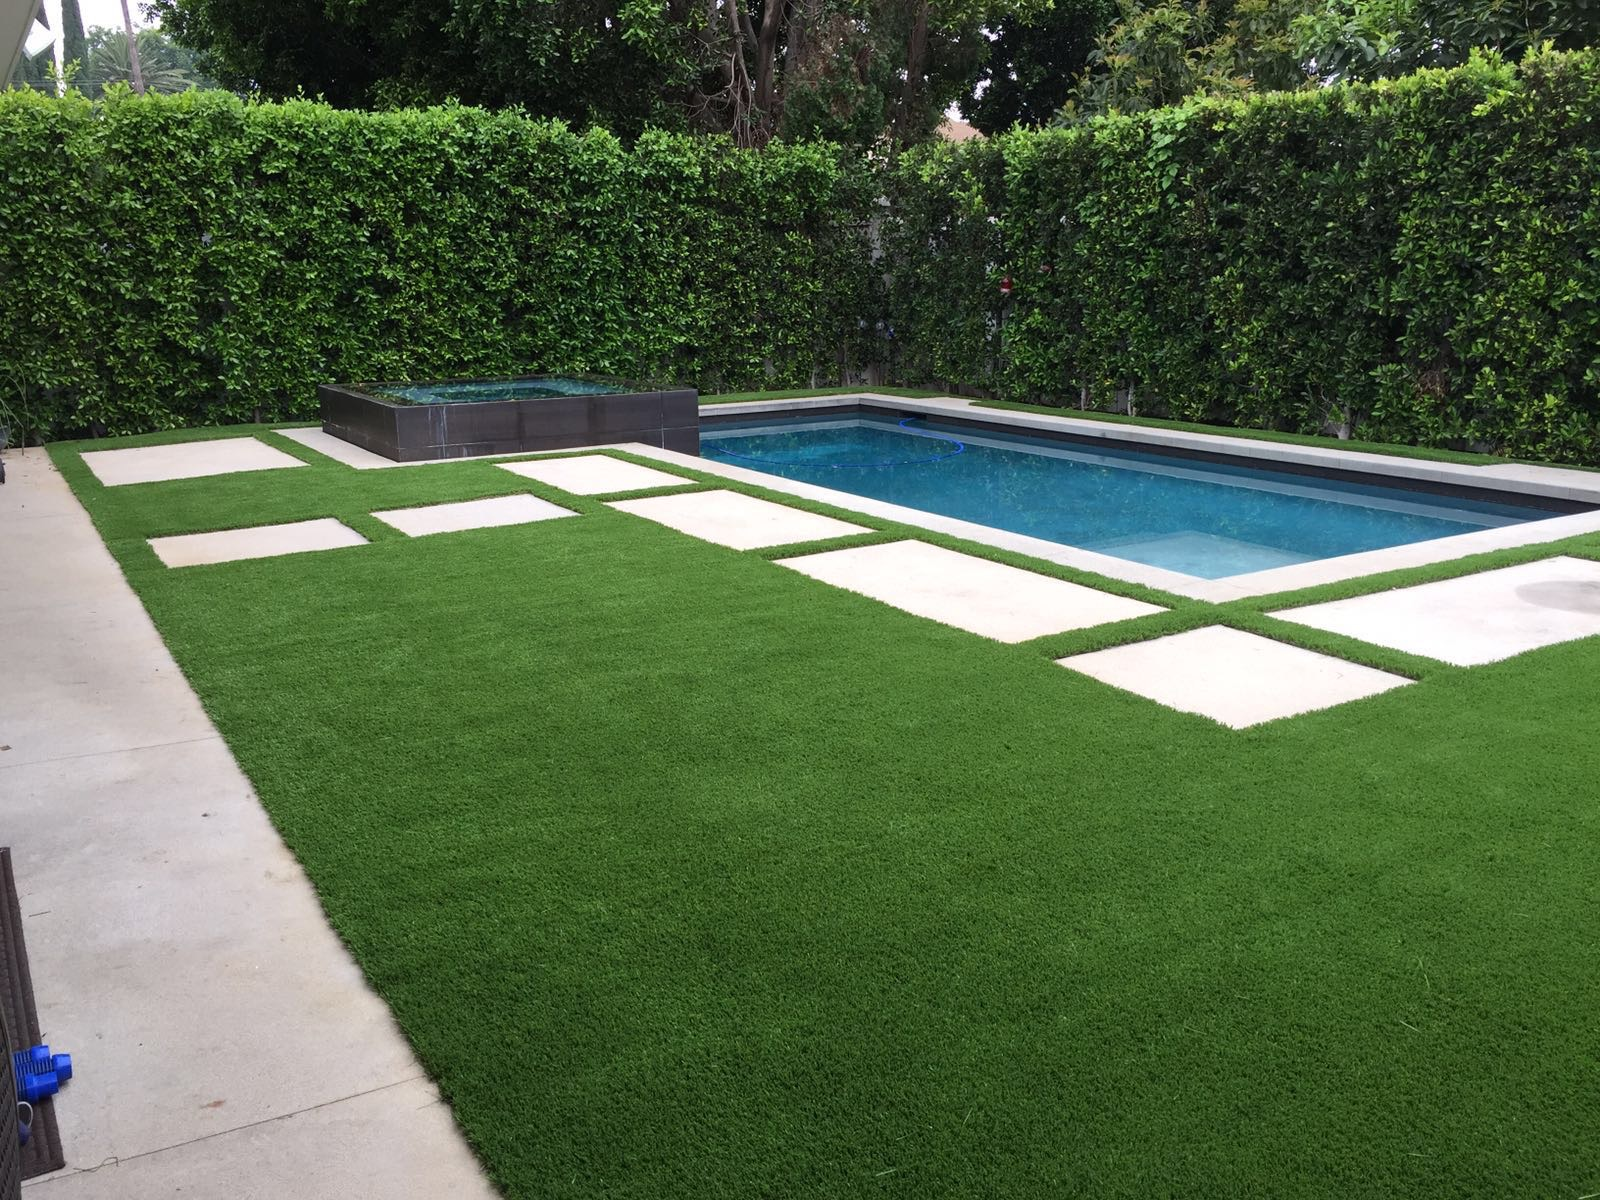 Artificial Grass Lawn | Tri County Turf | Artificial Turf in California